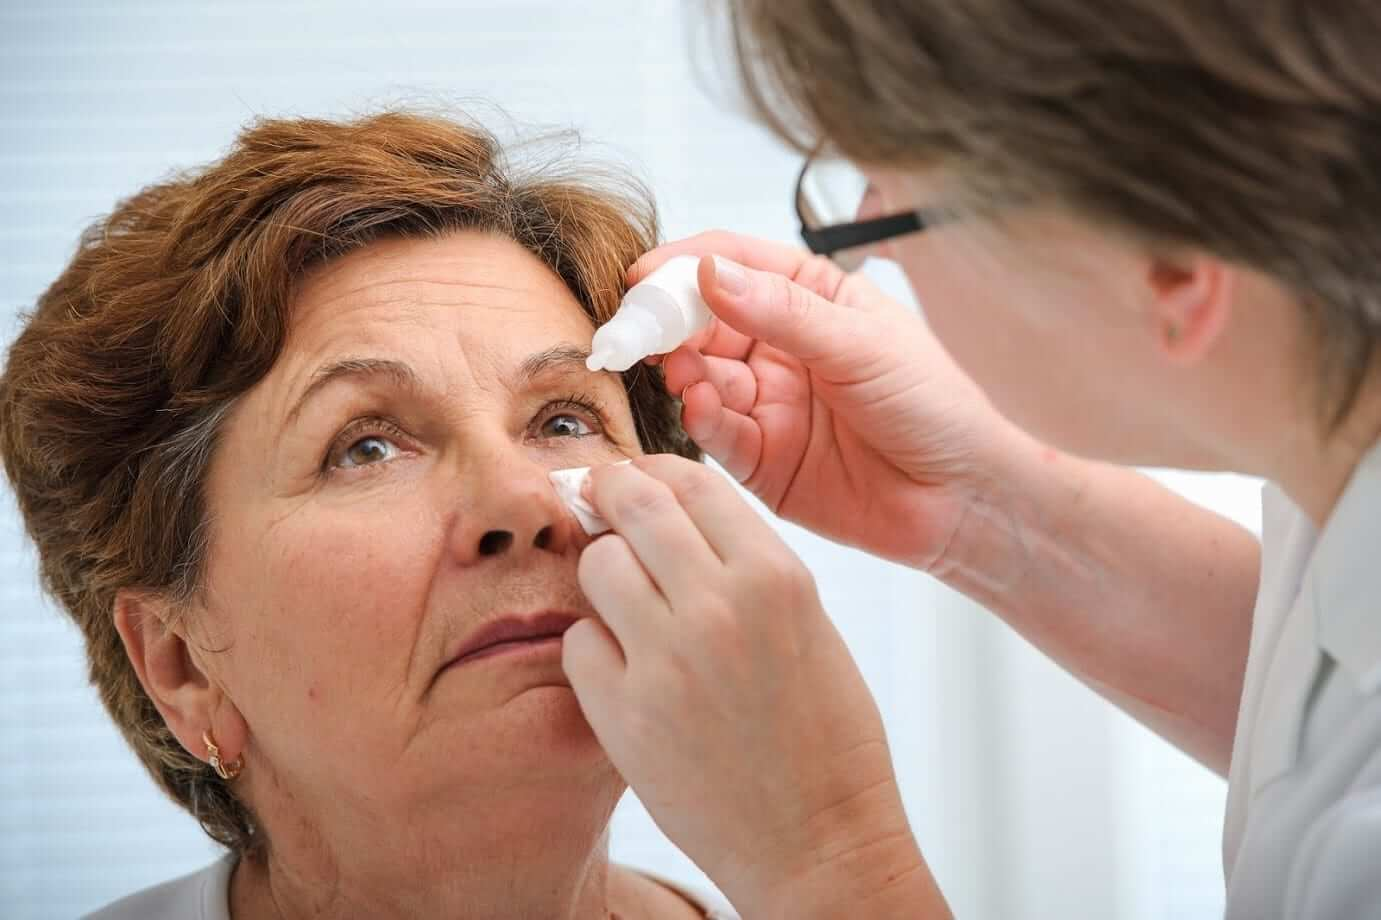 Do's and Don'ts for Dealing With Something Stuck in Your Eye